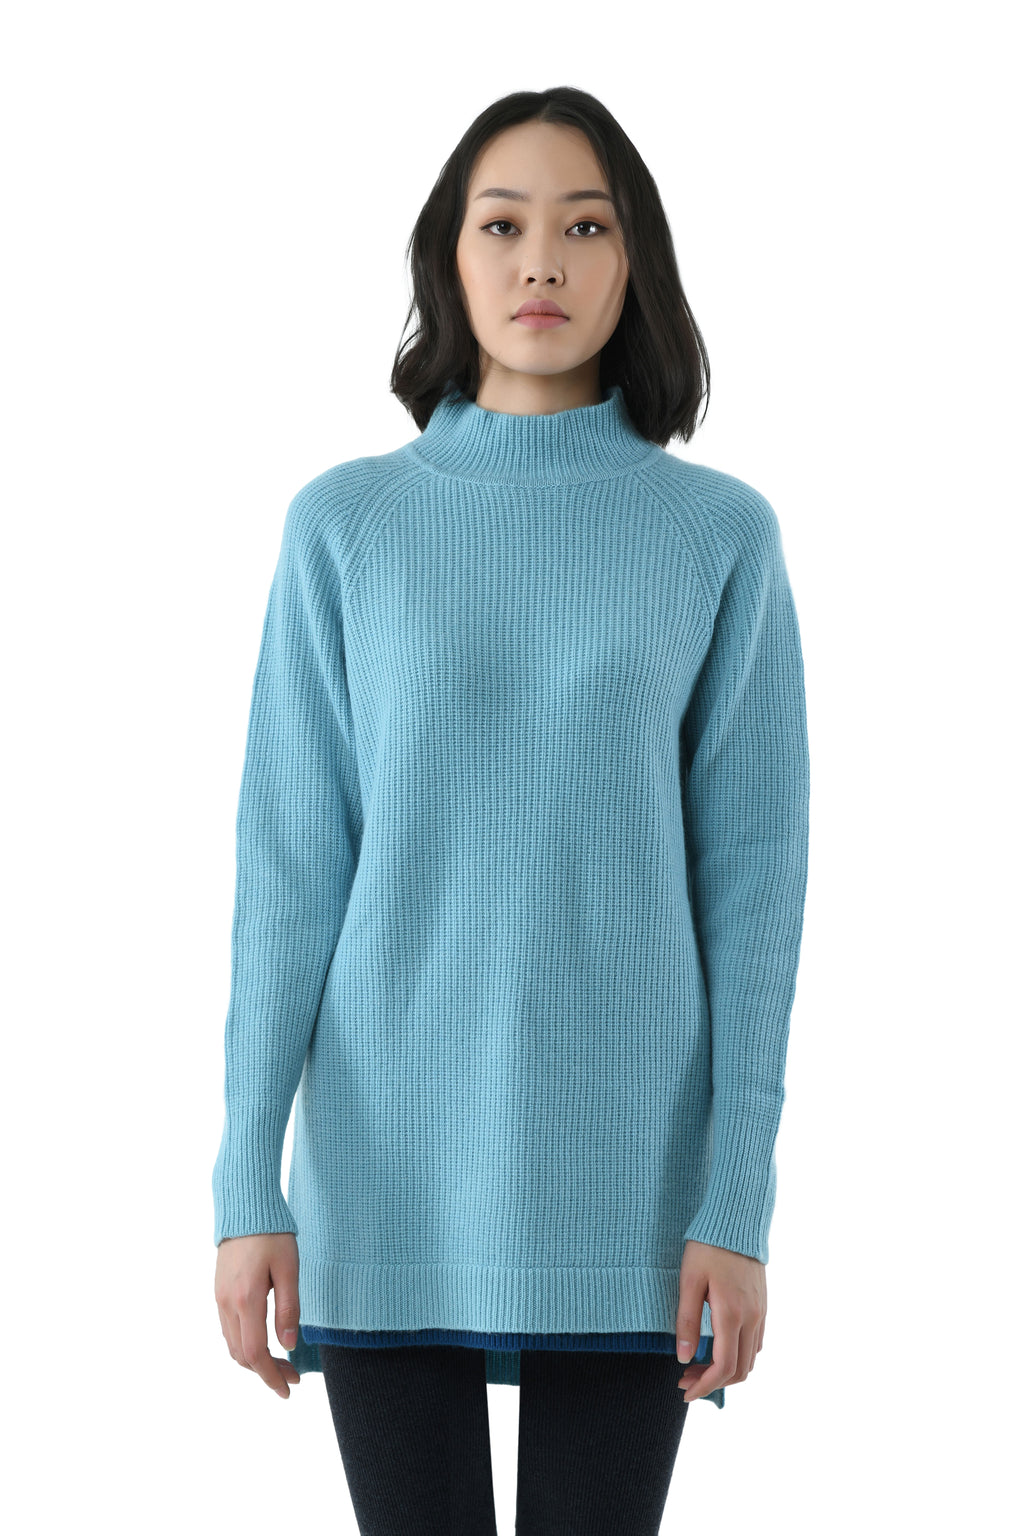 Colorful Turtleneck Cashmere Sweater